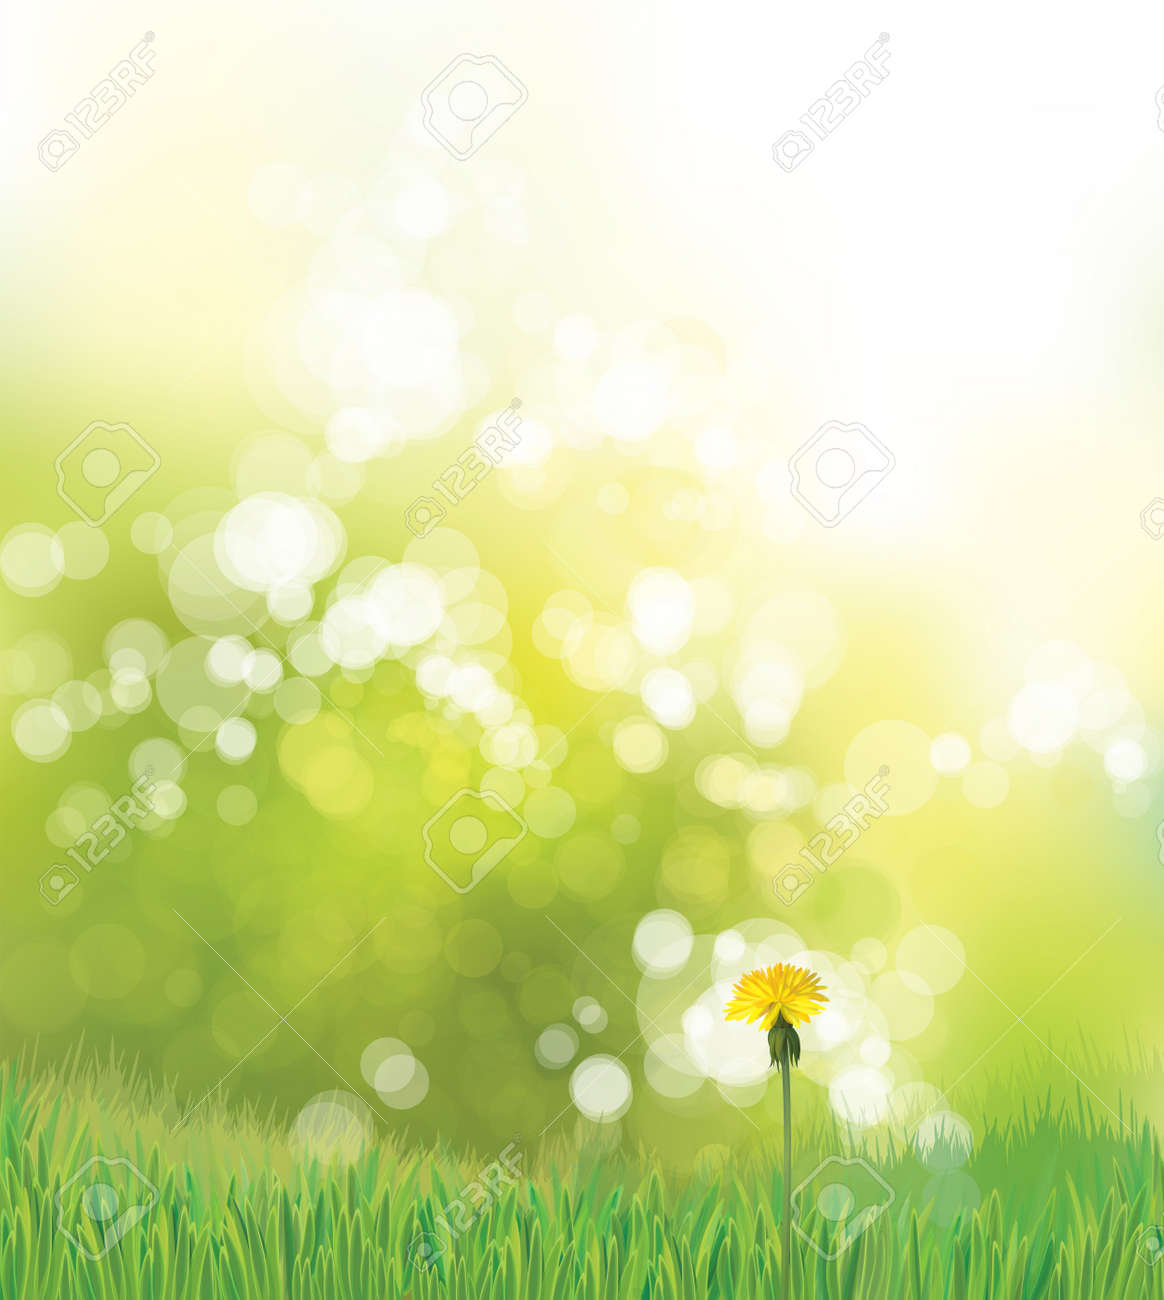 Vector spring background with yellow dandelion. - 125607786